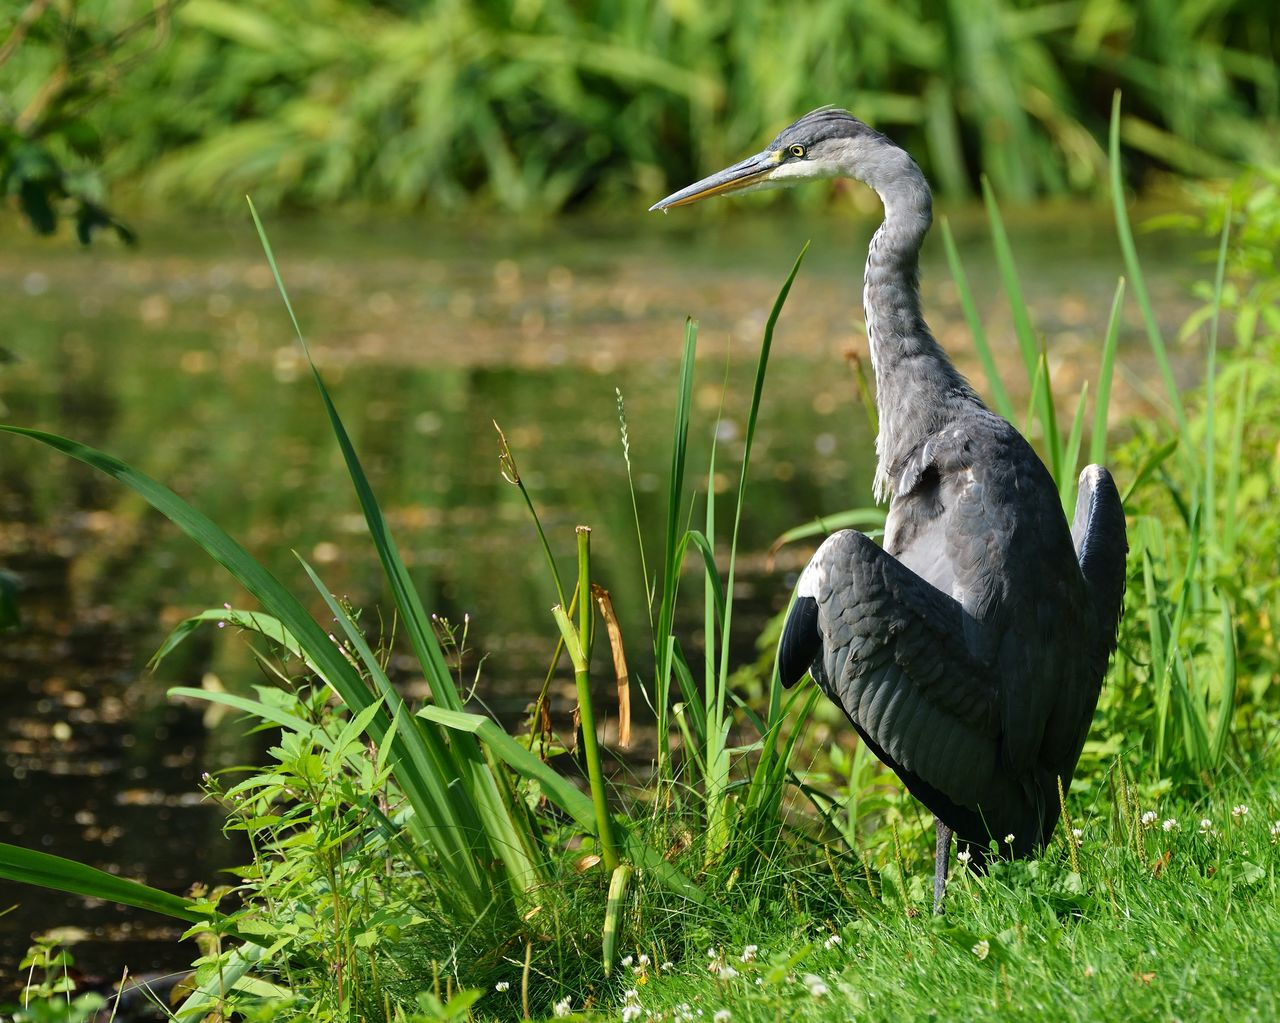 animal, animal themes, bird, vertebrate, animal wildlife, animals in the wild, grass, one animal, plant, green color, nature, day, land, field, no people, heron, focus on foreground, water bird, growth, water, outdoors, animal neck